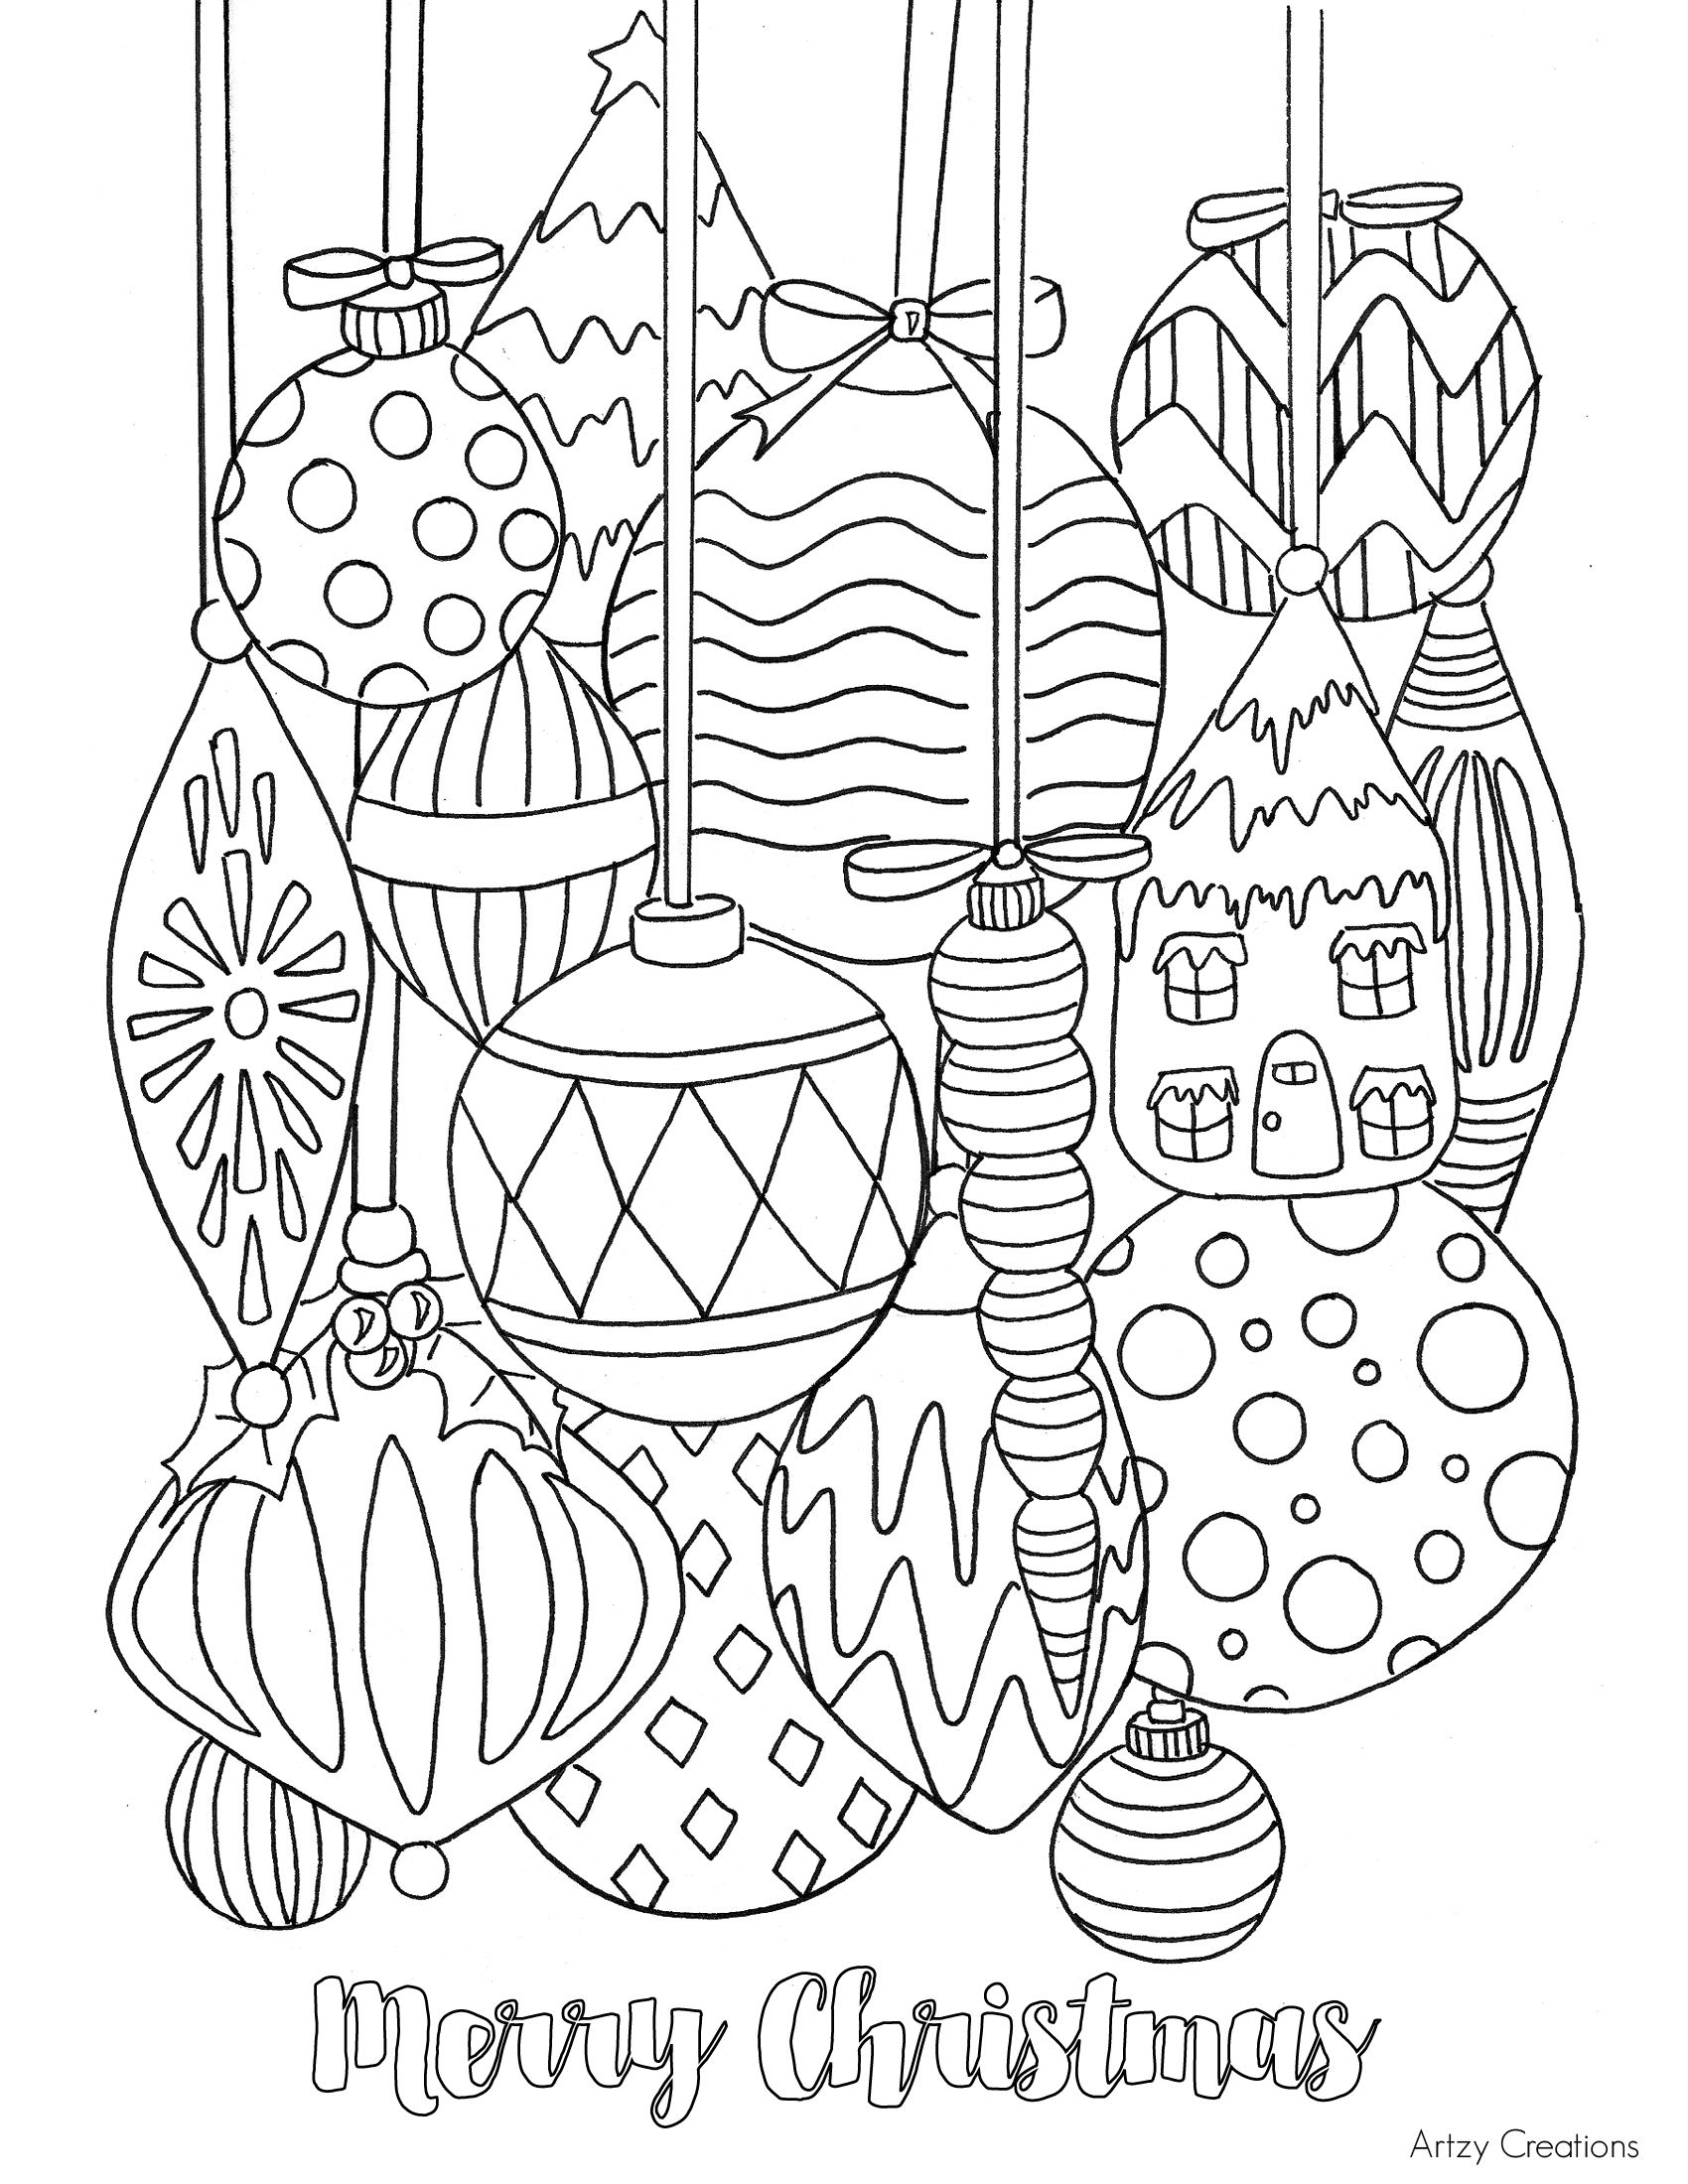 Christmas Ornaments Coloring Pages Printable With Free Ornament Page Tgif This Grandma Is Fun